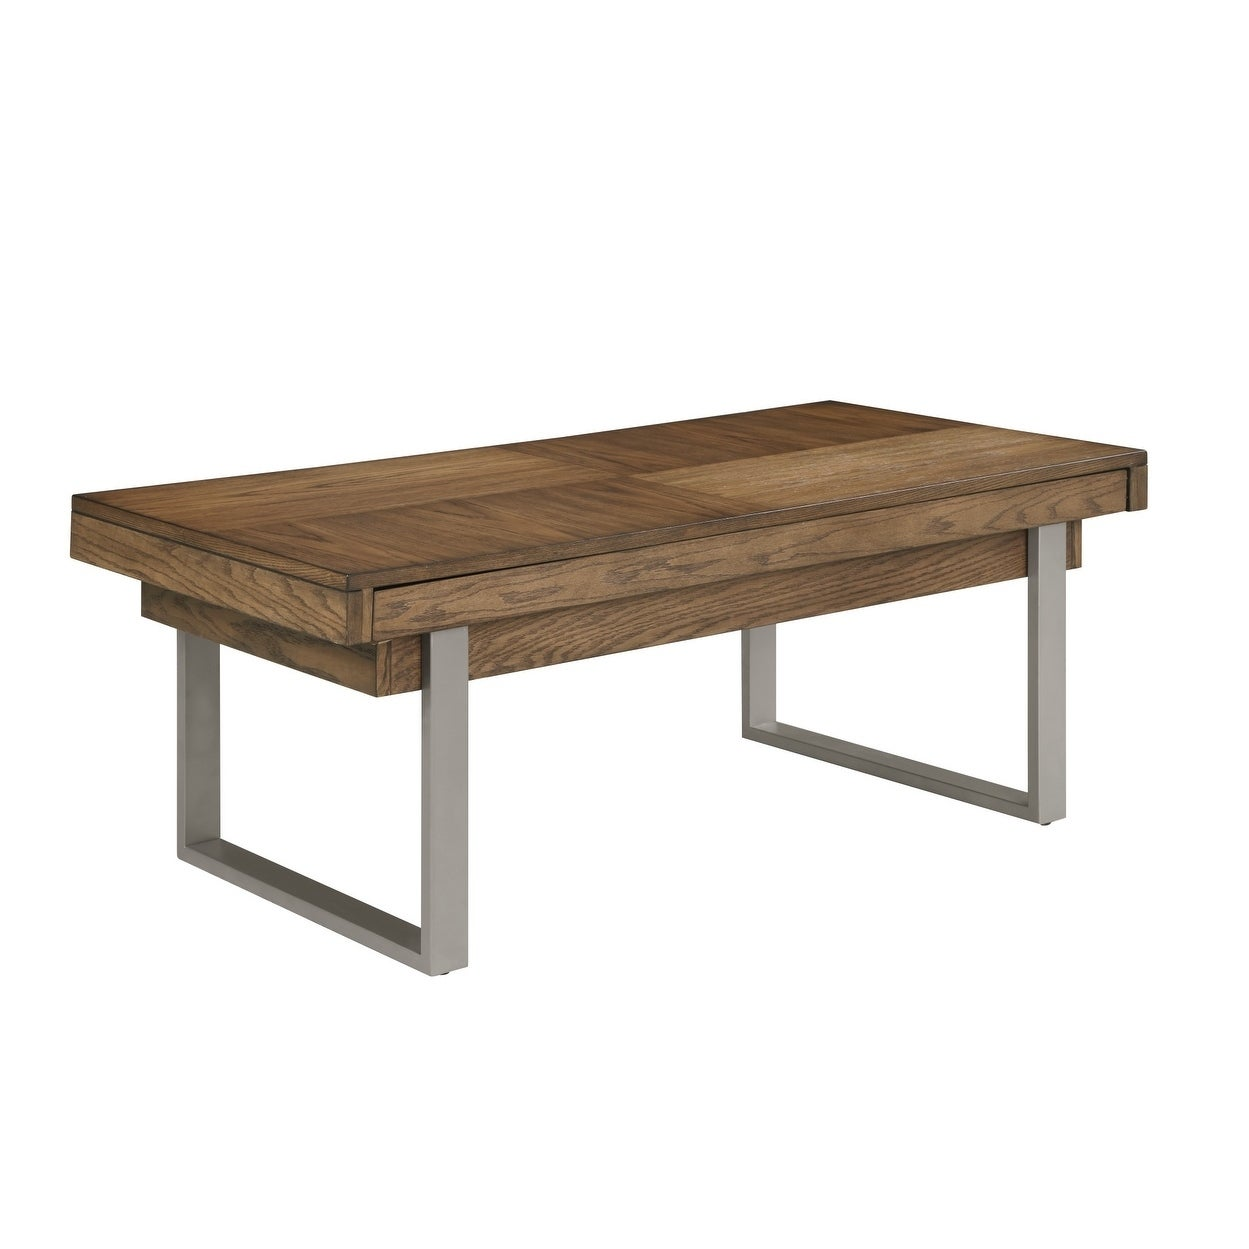 Emerald Home Slider Golden Oak Coffee Table On Free Shipping Today 22307935